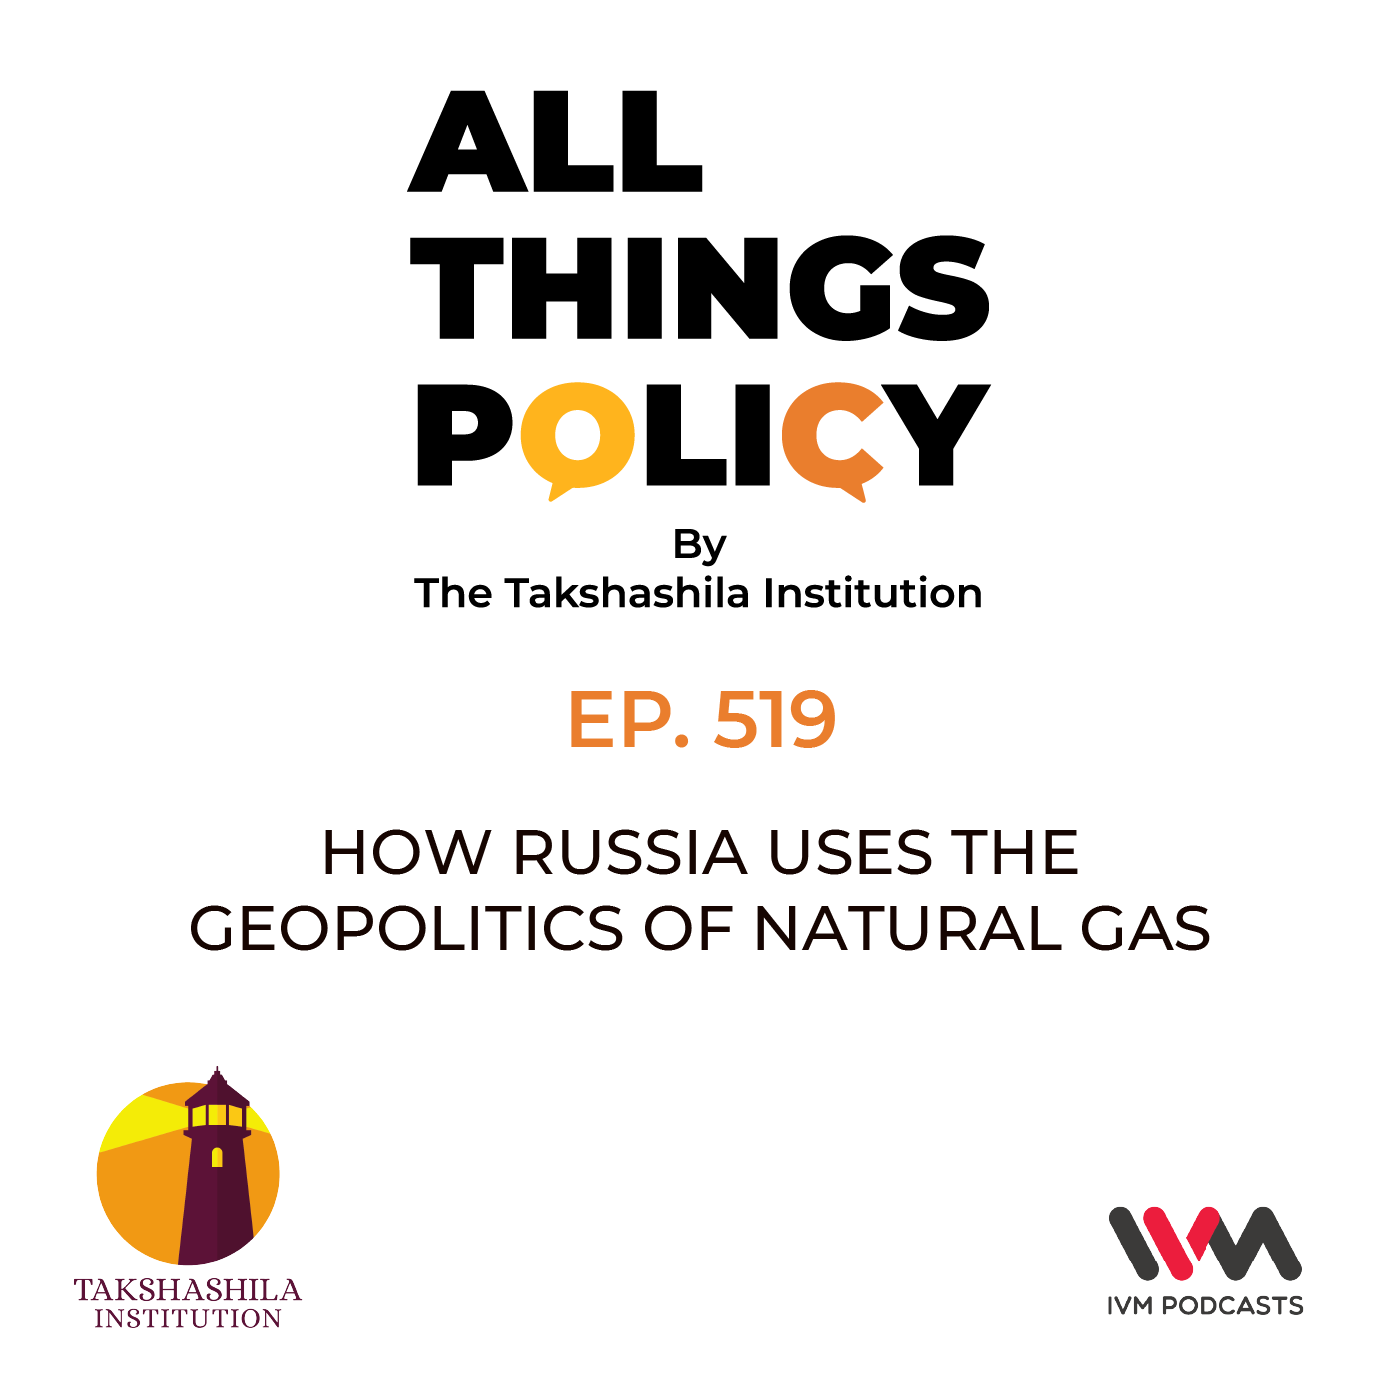 Ep. 519: How Russia Uses the Geopolitics of Natural Gas